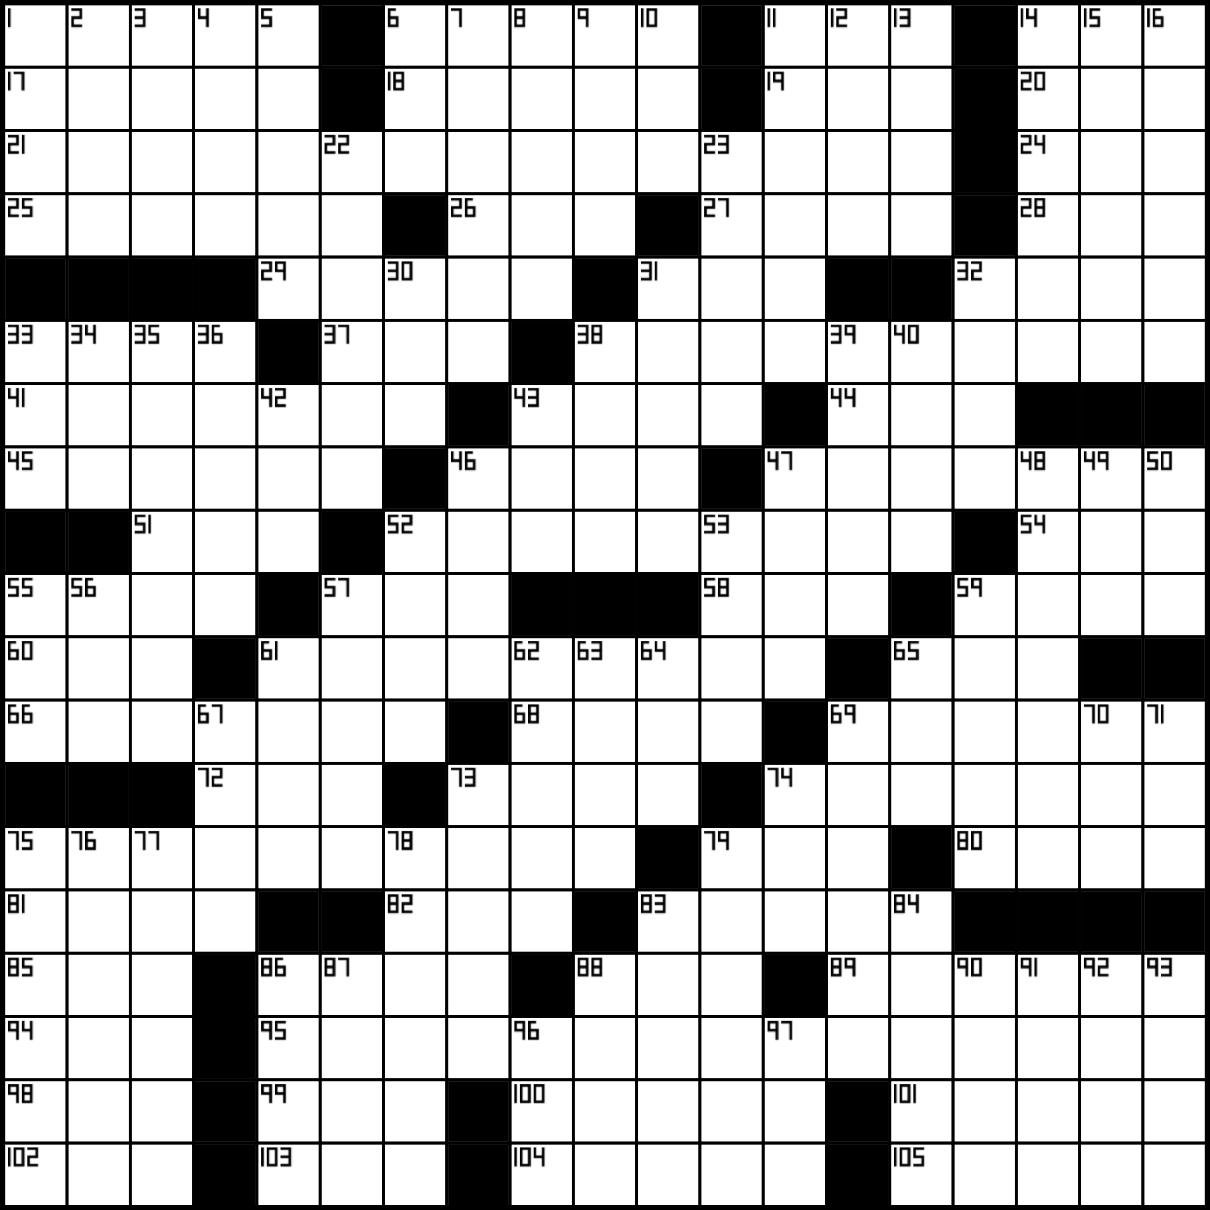 Pdb-101: Learn: Flyers, Posters & Other Resources: Other Resources: Crossword Puzzle